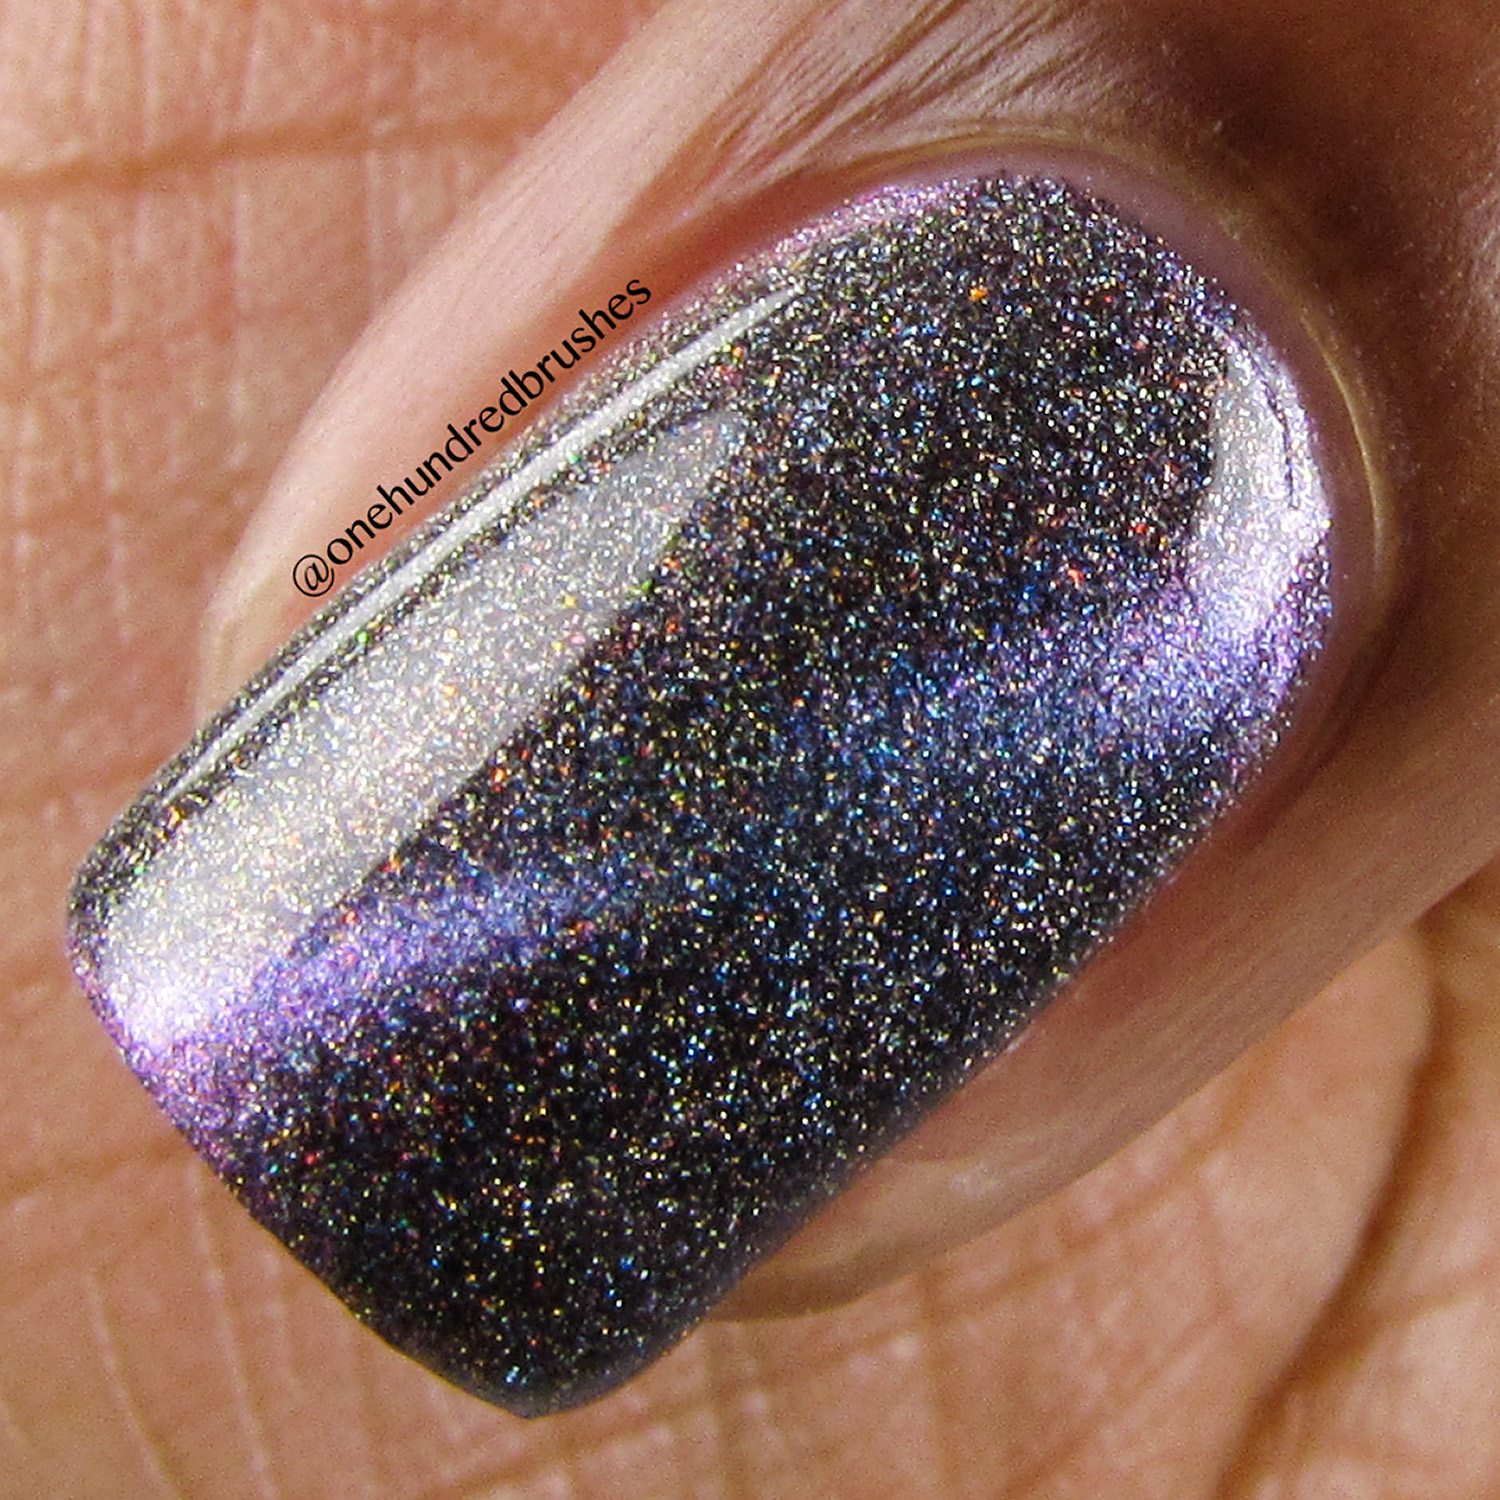 Cautiously Optimistic - Macro - Vapid Lacquer - May Releases 2018